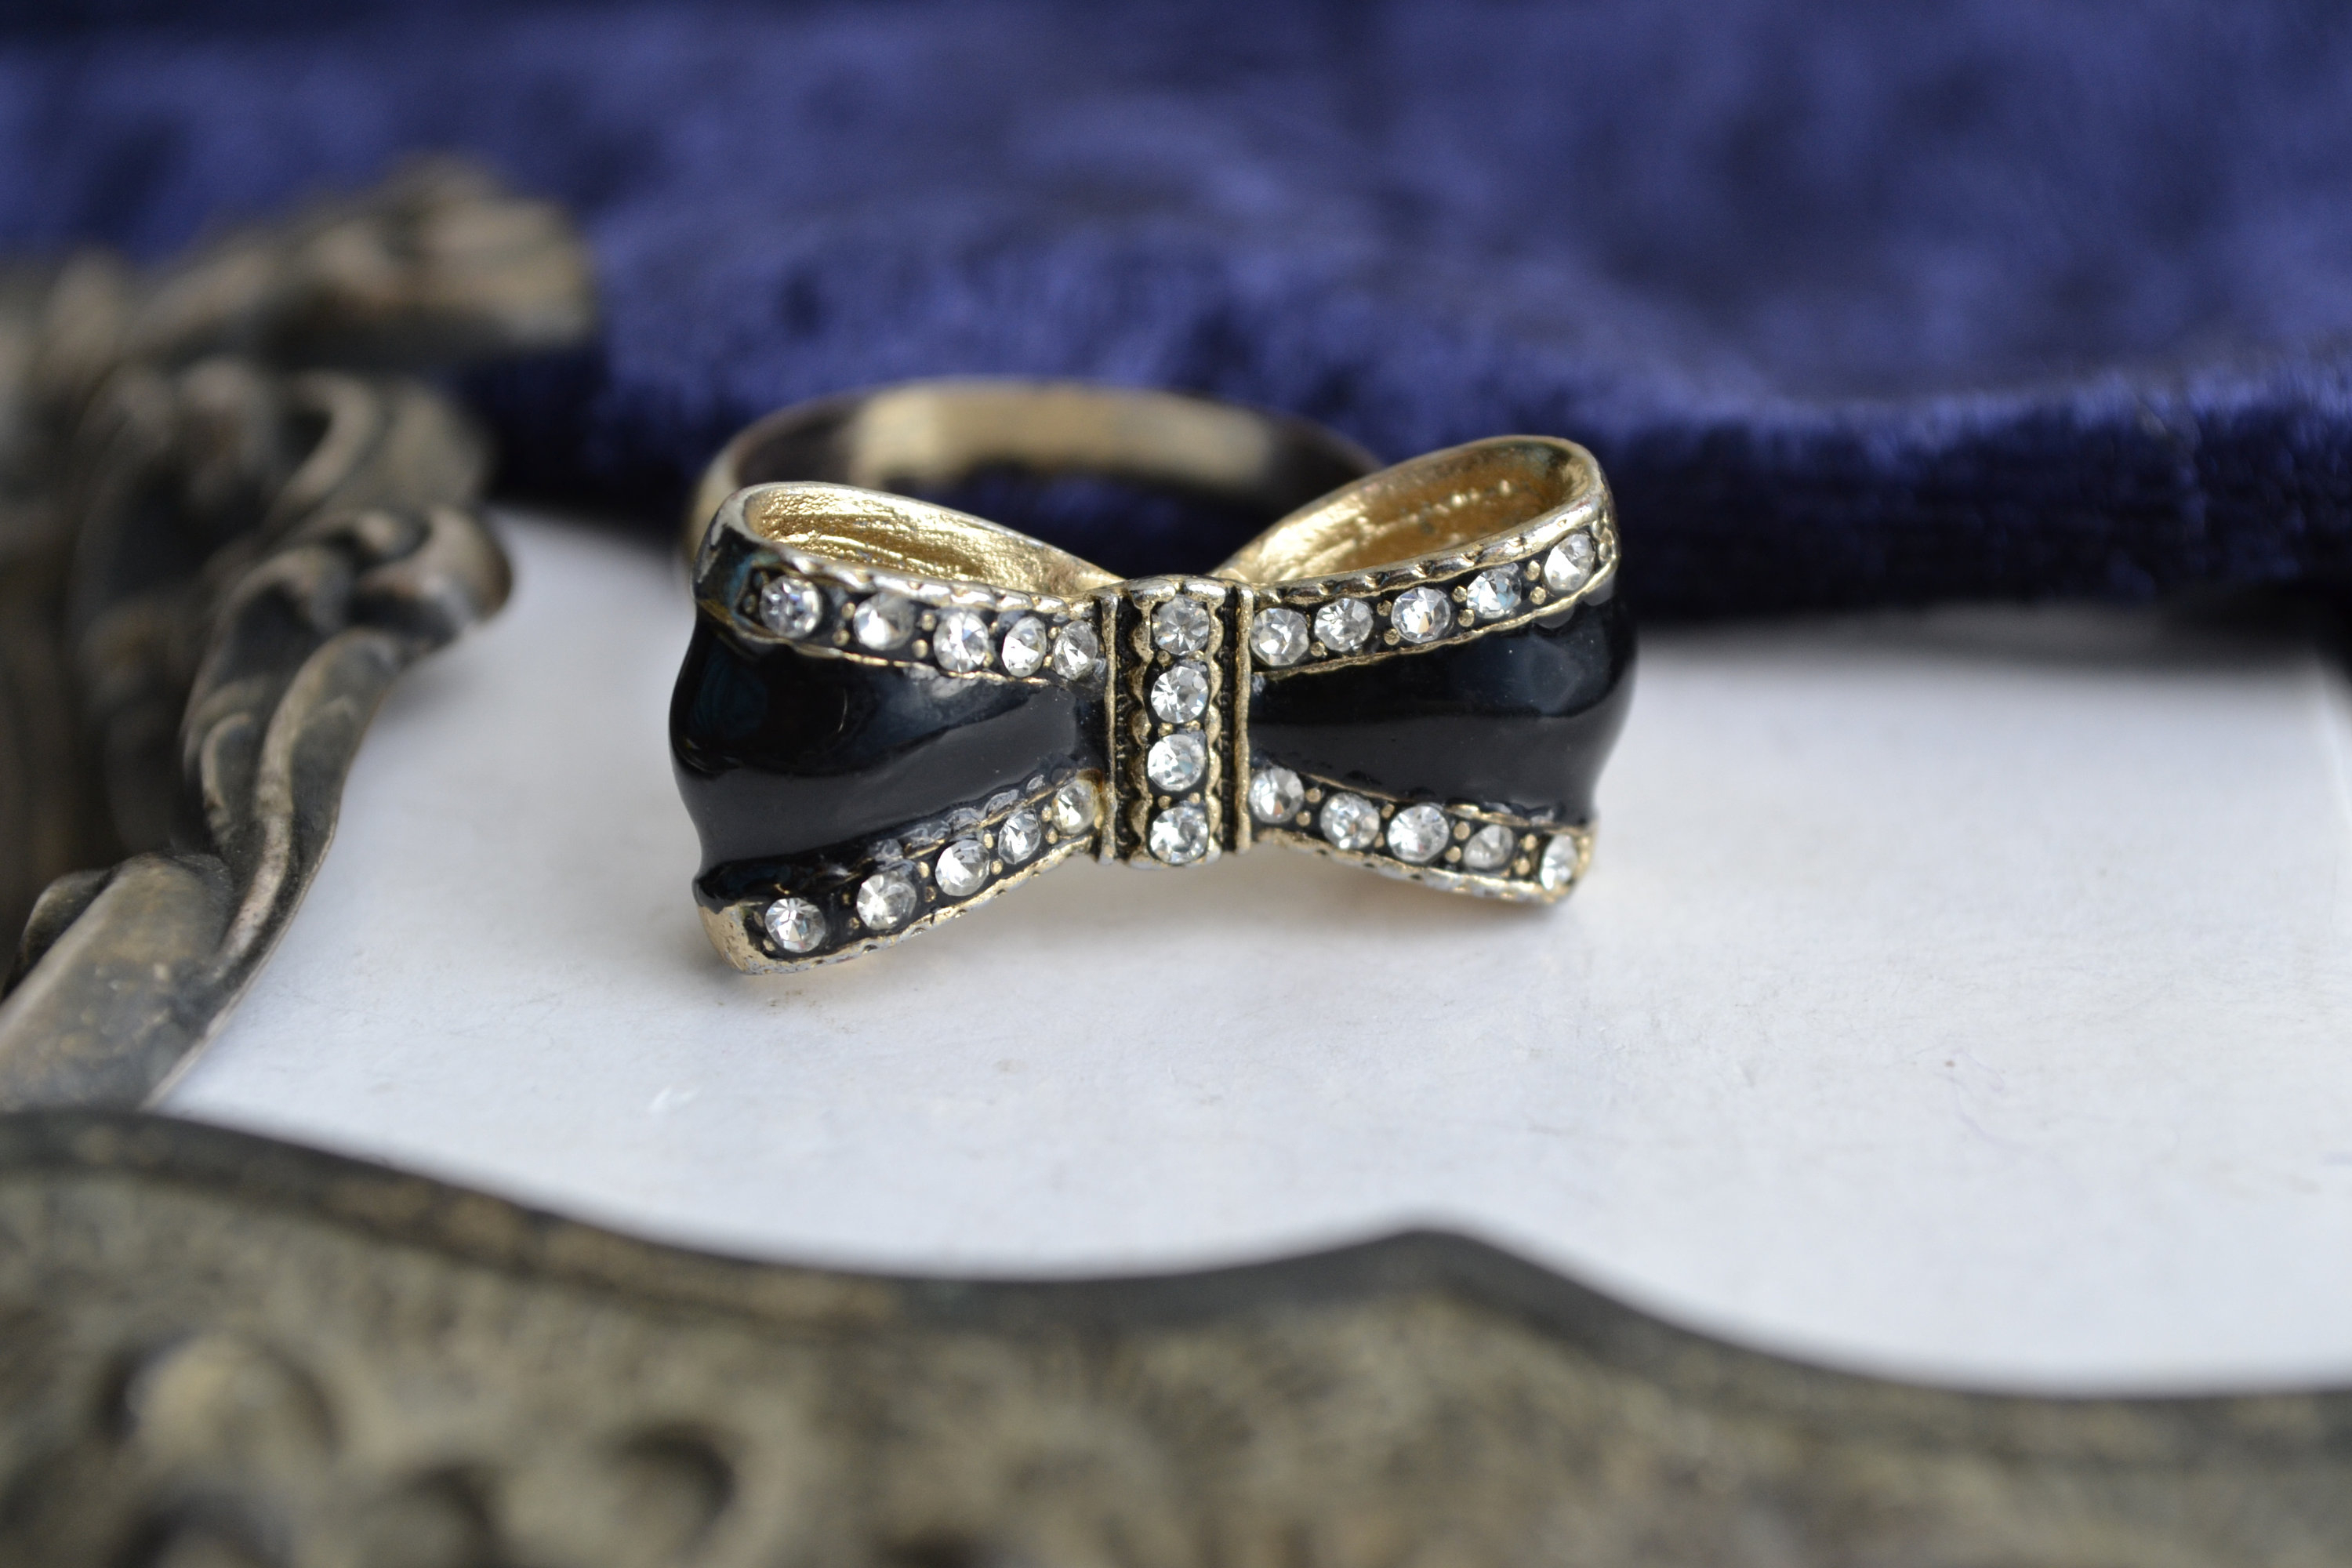 Vintage Black Enamel Bow Ring With Colourless Rhinestones, Ladies Ring, Uk Size R, 1990S Diamante Pretty Ring Within Most Popular Classic Bow Rings (View 18 of 25)